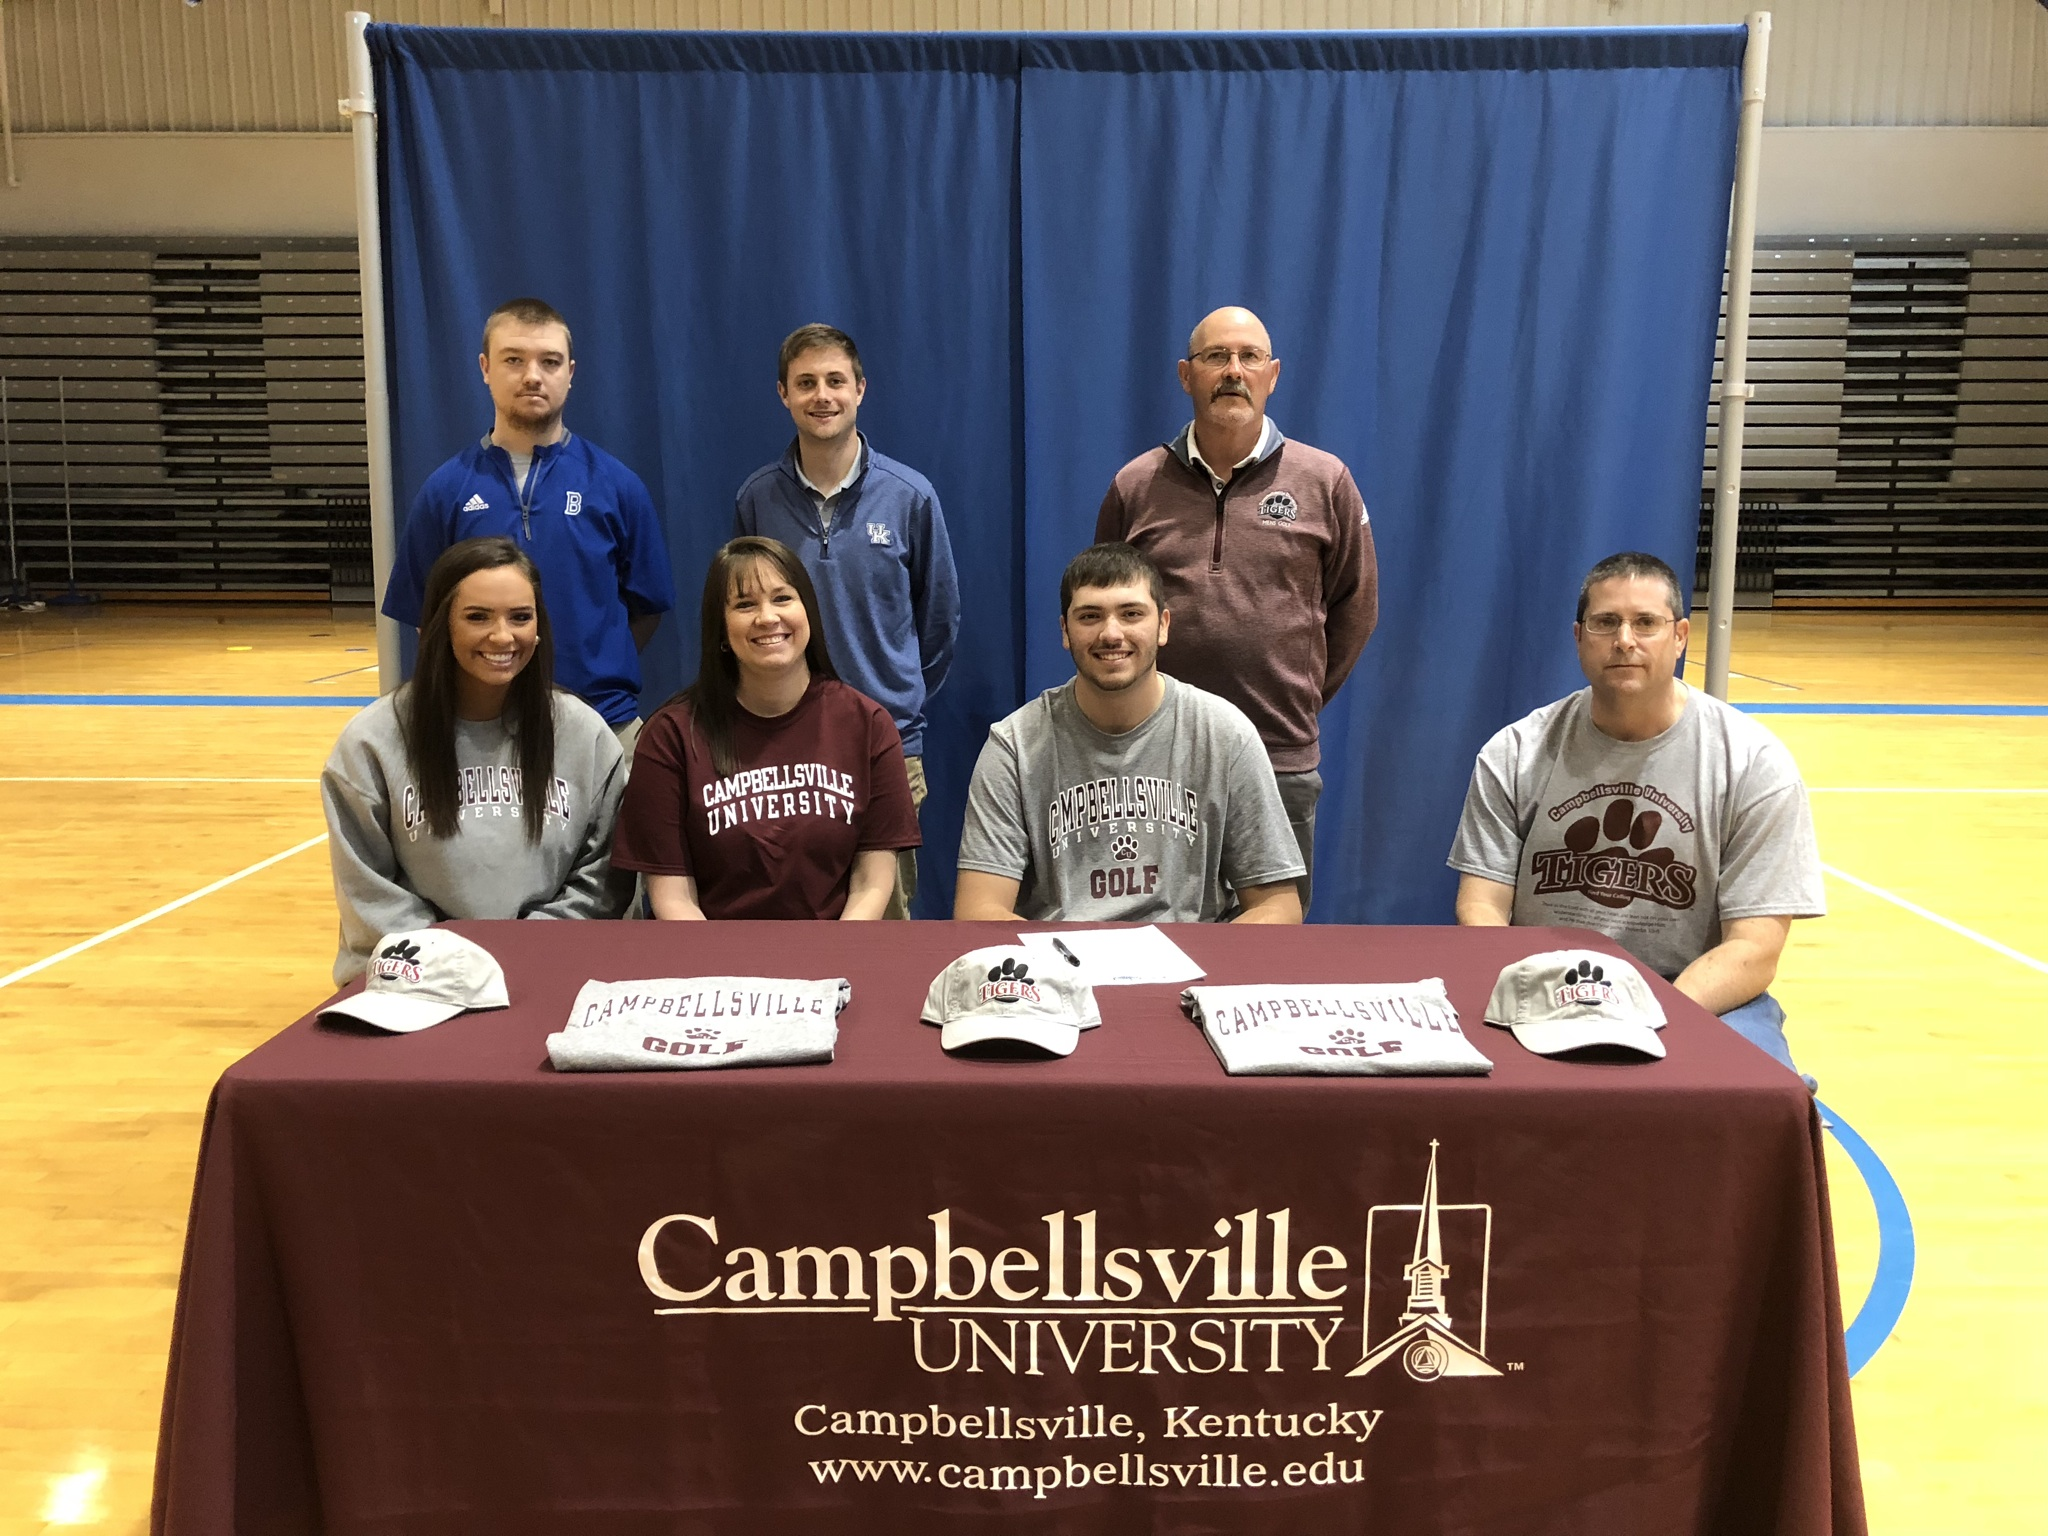 Seth Bohl signs with Campbellsville University to play golf.